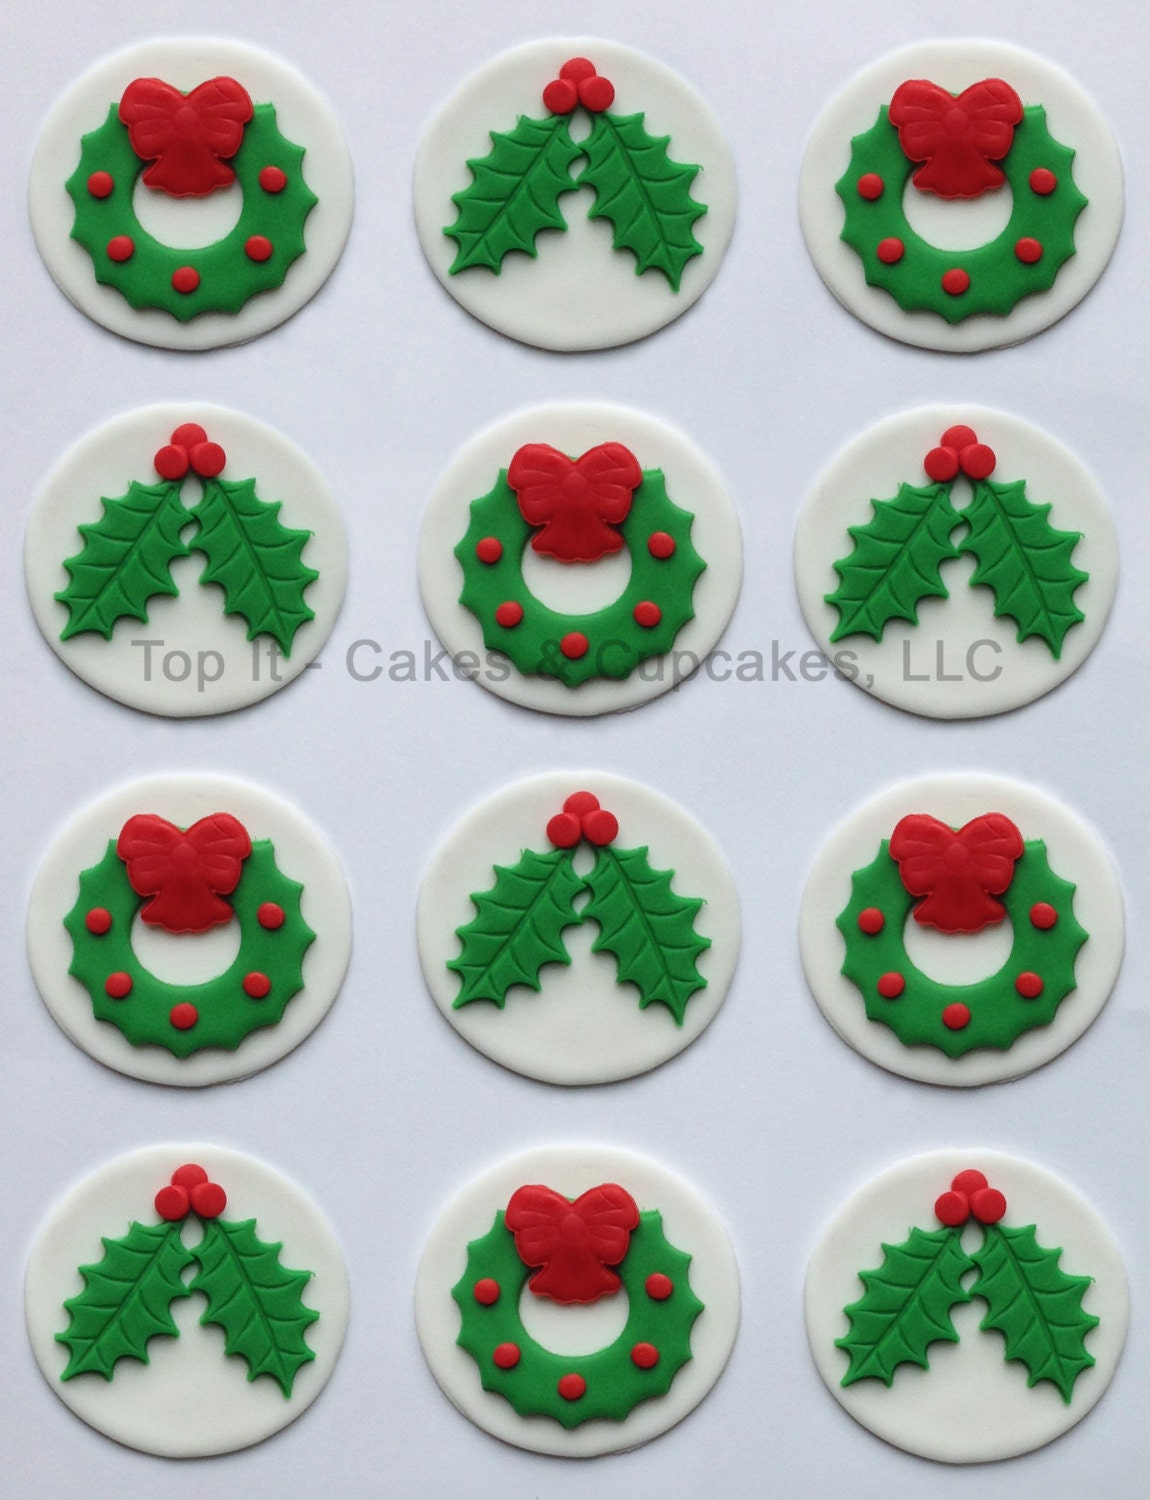 Holly Cake Toppers